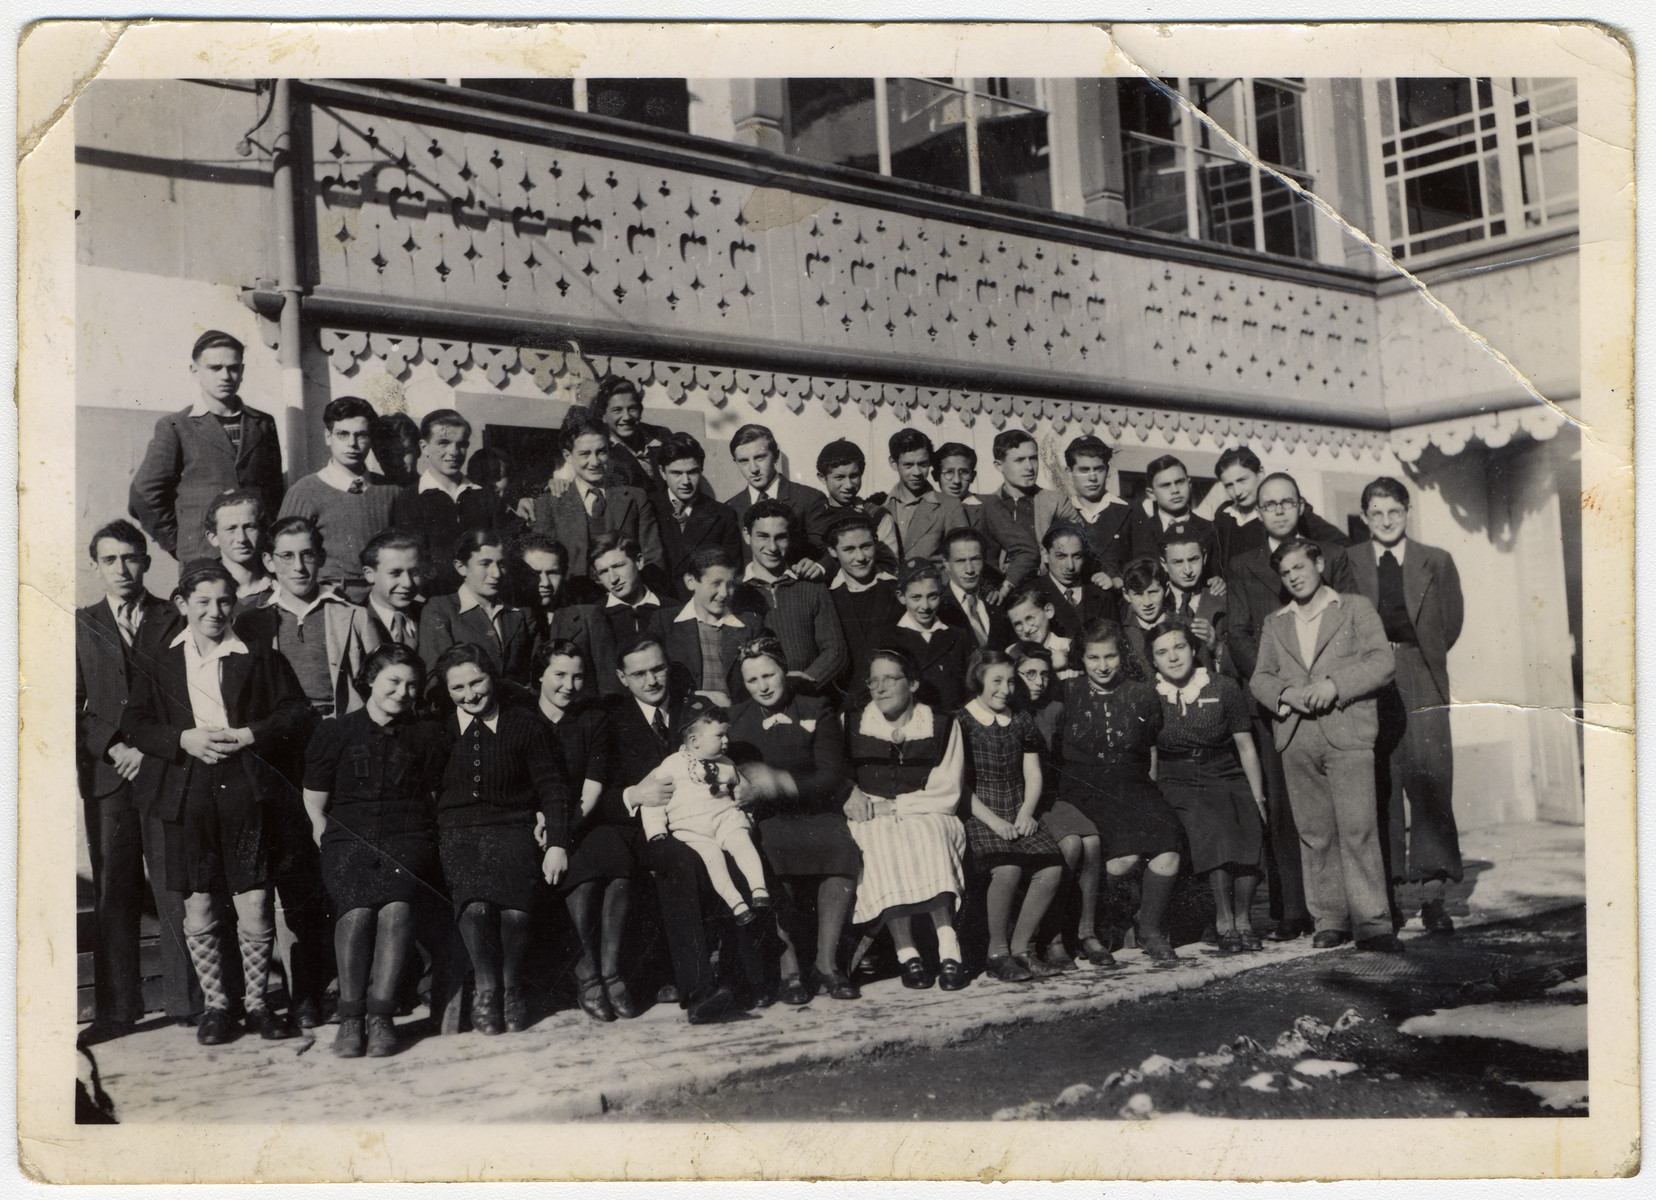 Group portrait of residents of an Orthodox children's home in Basel.  Rabbi Stern is pictured in the front row, center with his wife.  Next to his wife is Miss Riesner, the sewing teacher.  Ruth is sitting next to Miss Riesner.